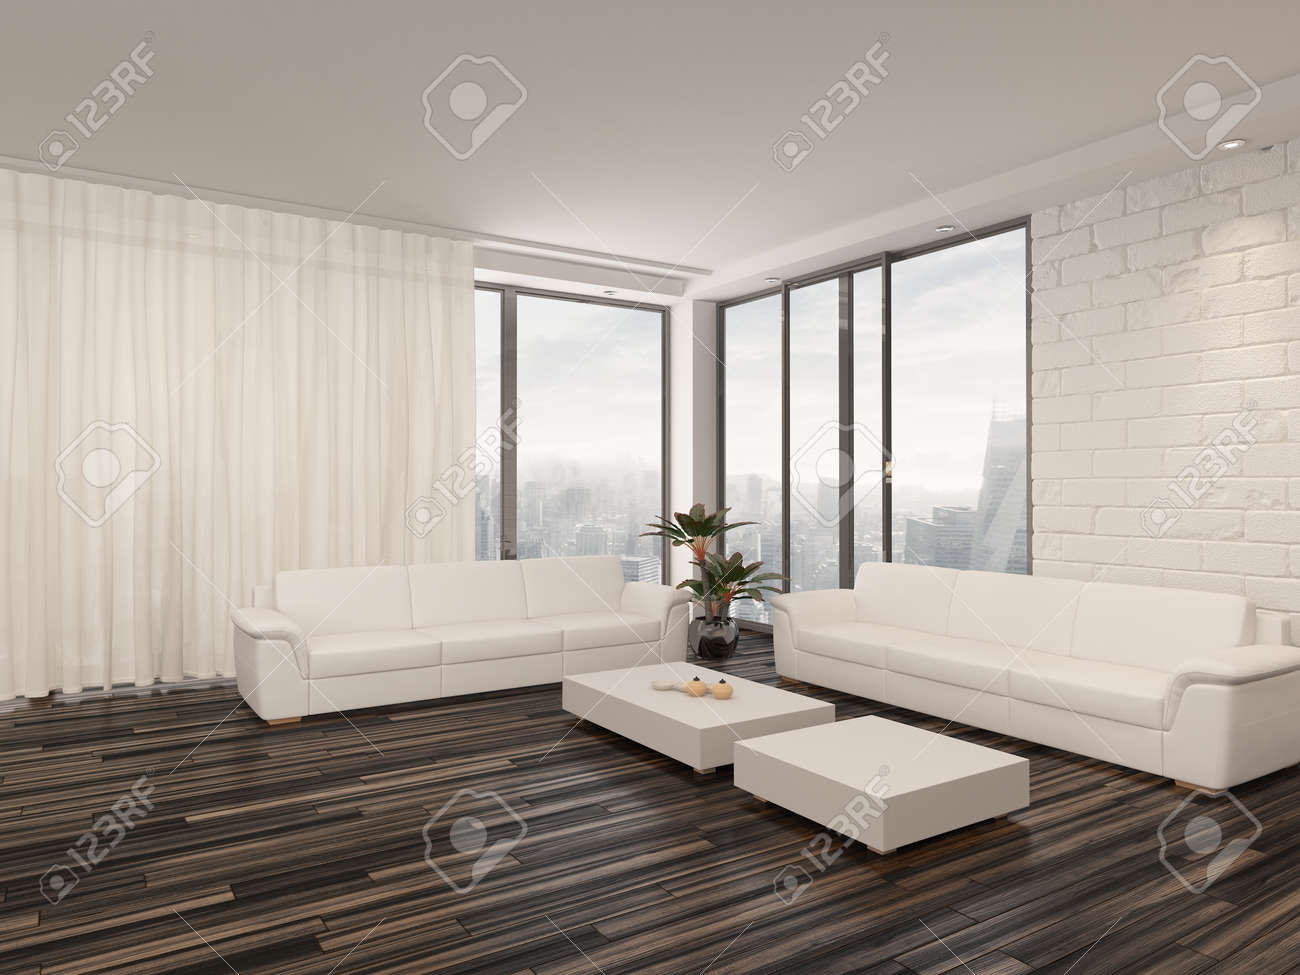 Modern Minimalist Sitting Room Interior With A Bare Wooden Parquet